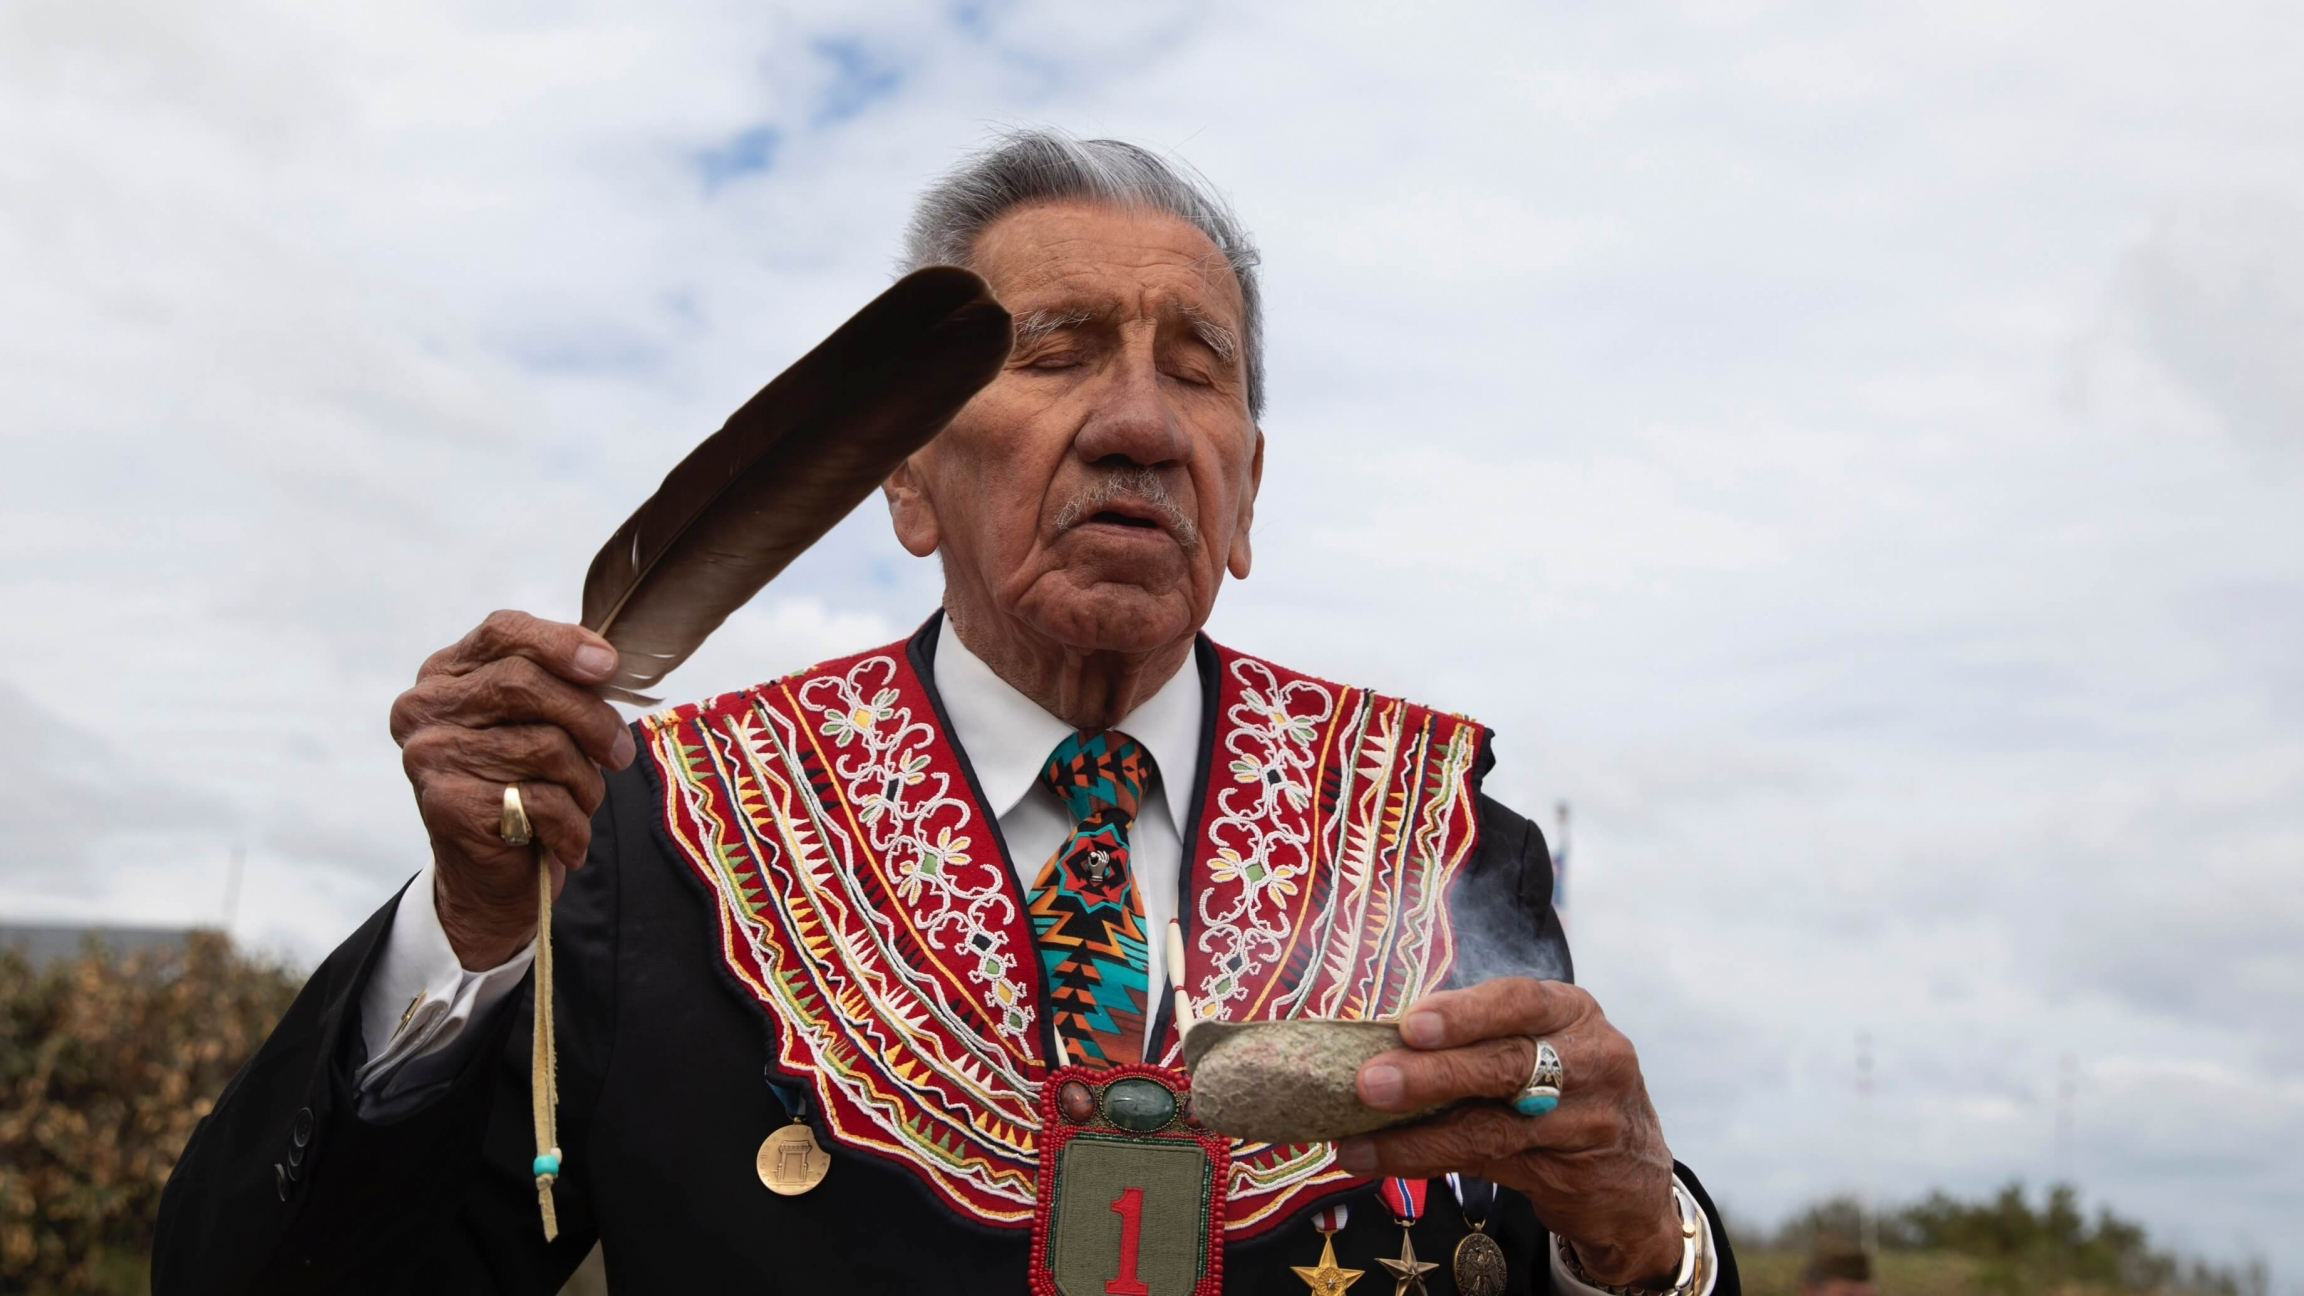 A Native American elder performs a ritual ceremony using a feather.